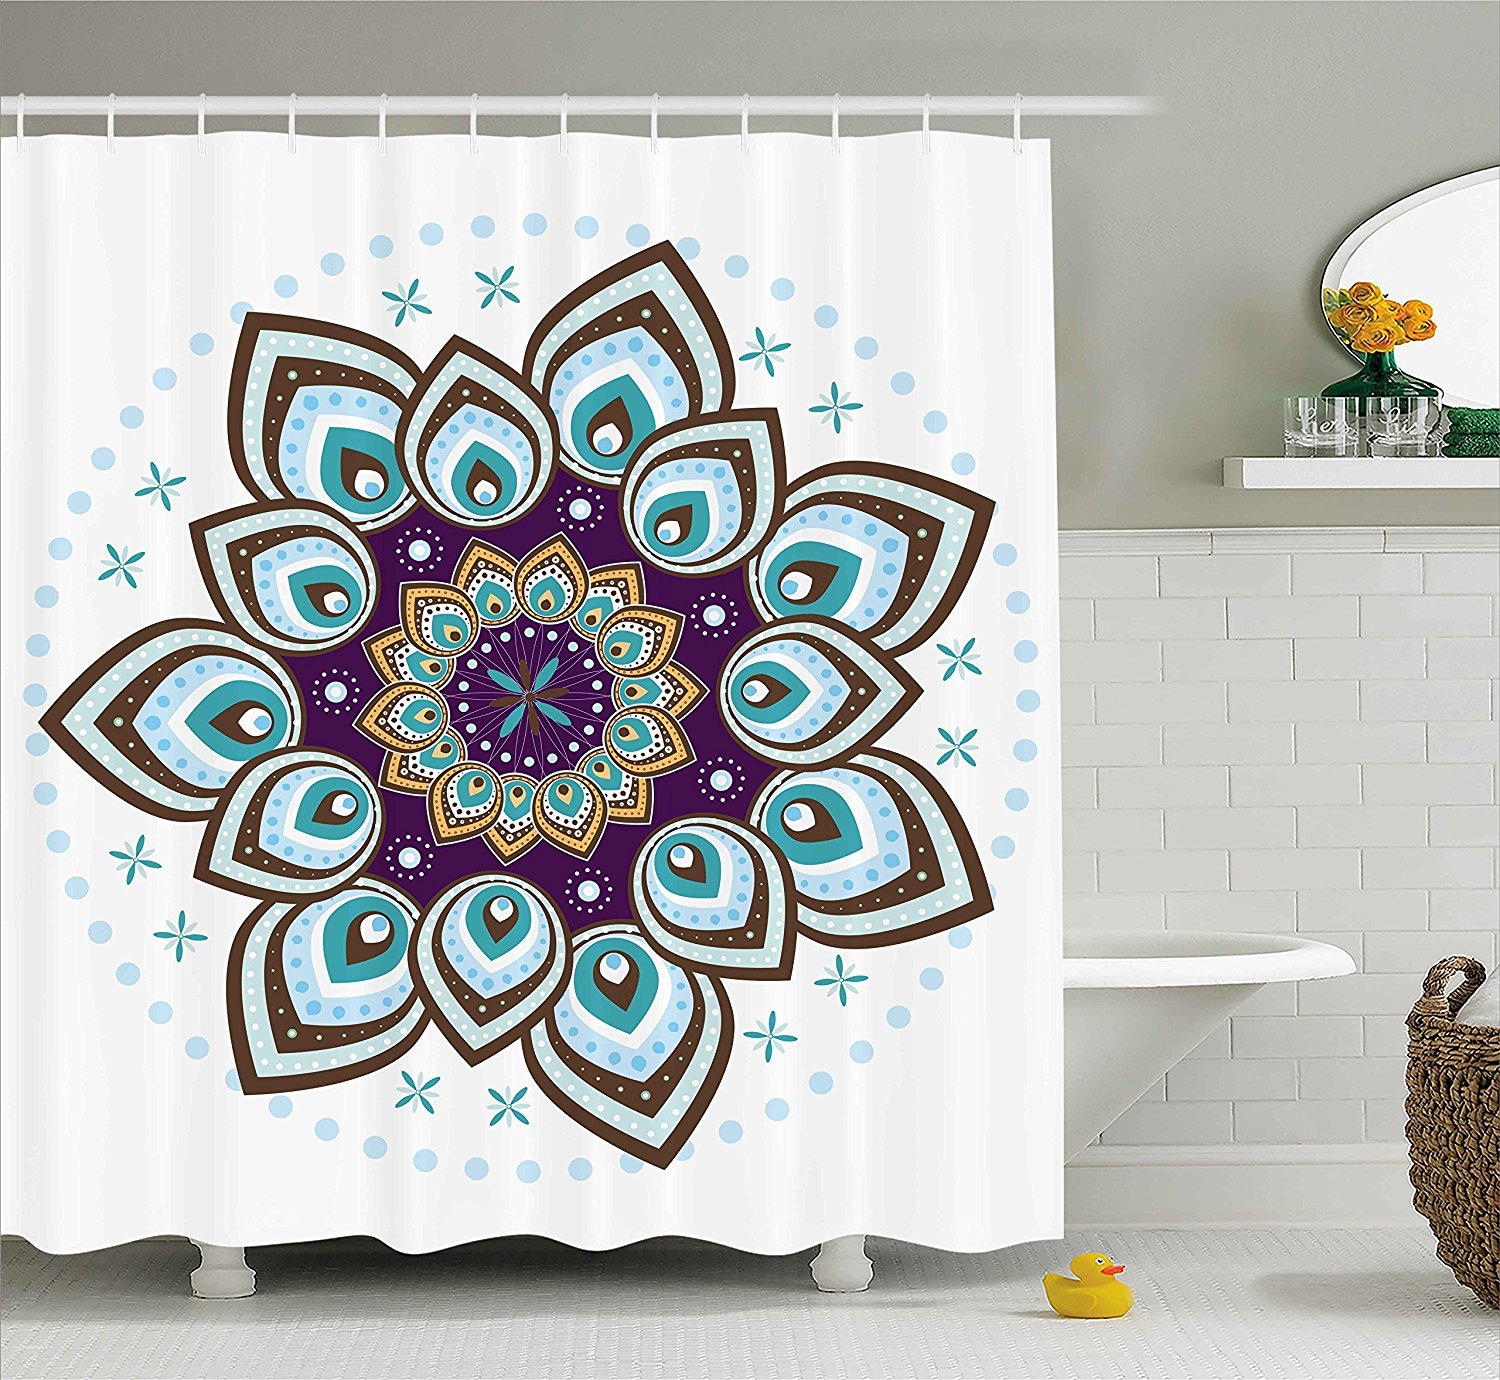 Mandala Decor Shower Curtain by Ambesonne, Boho Lotus Flower Stylized Microcosm Motif Unique Retro Spiritual Theme, Fabric Bathroom Decor Set with Hooks, 84 Inches Extra Long, Purple Teal and Brown